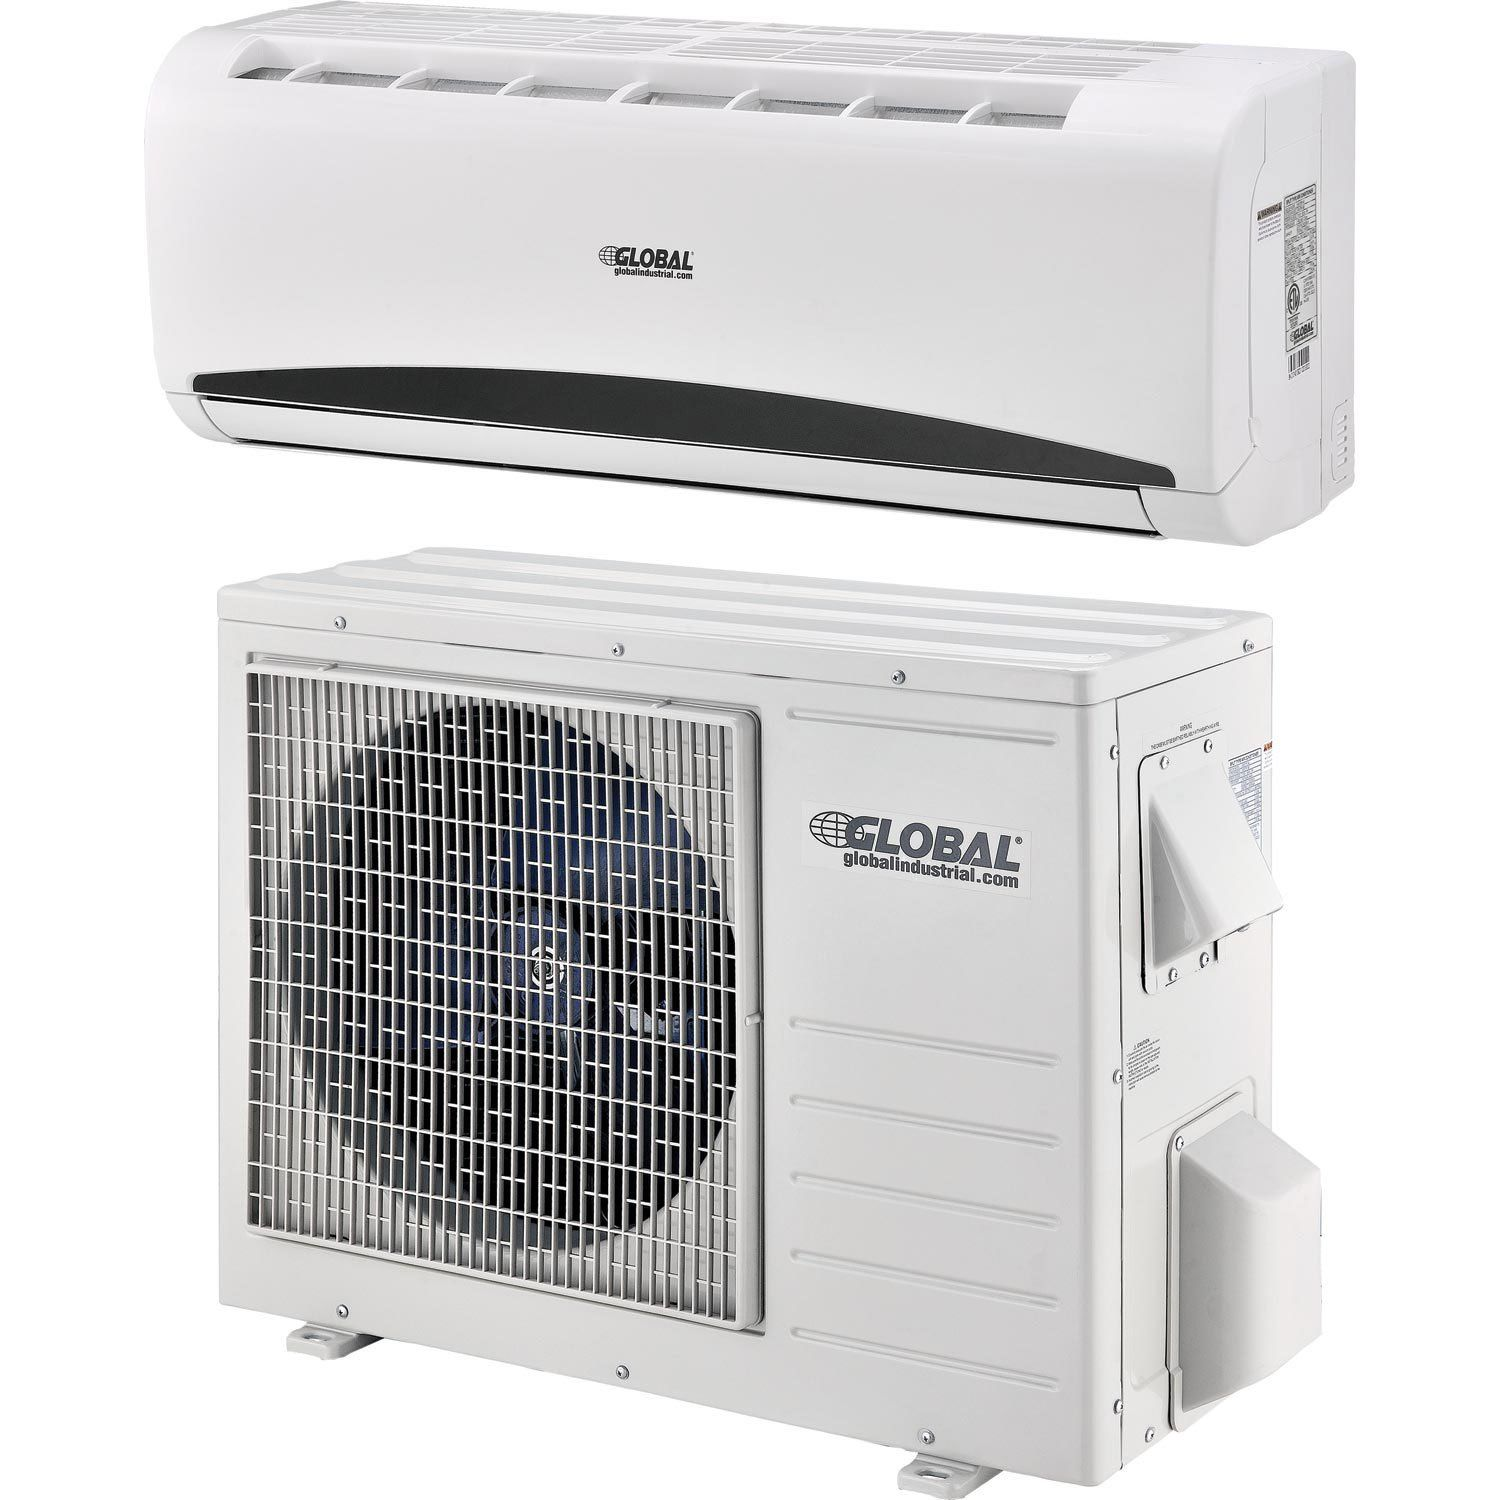 Ductless Air Conditioner 9000 Btu Seer 21 See This Great